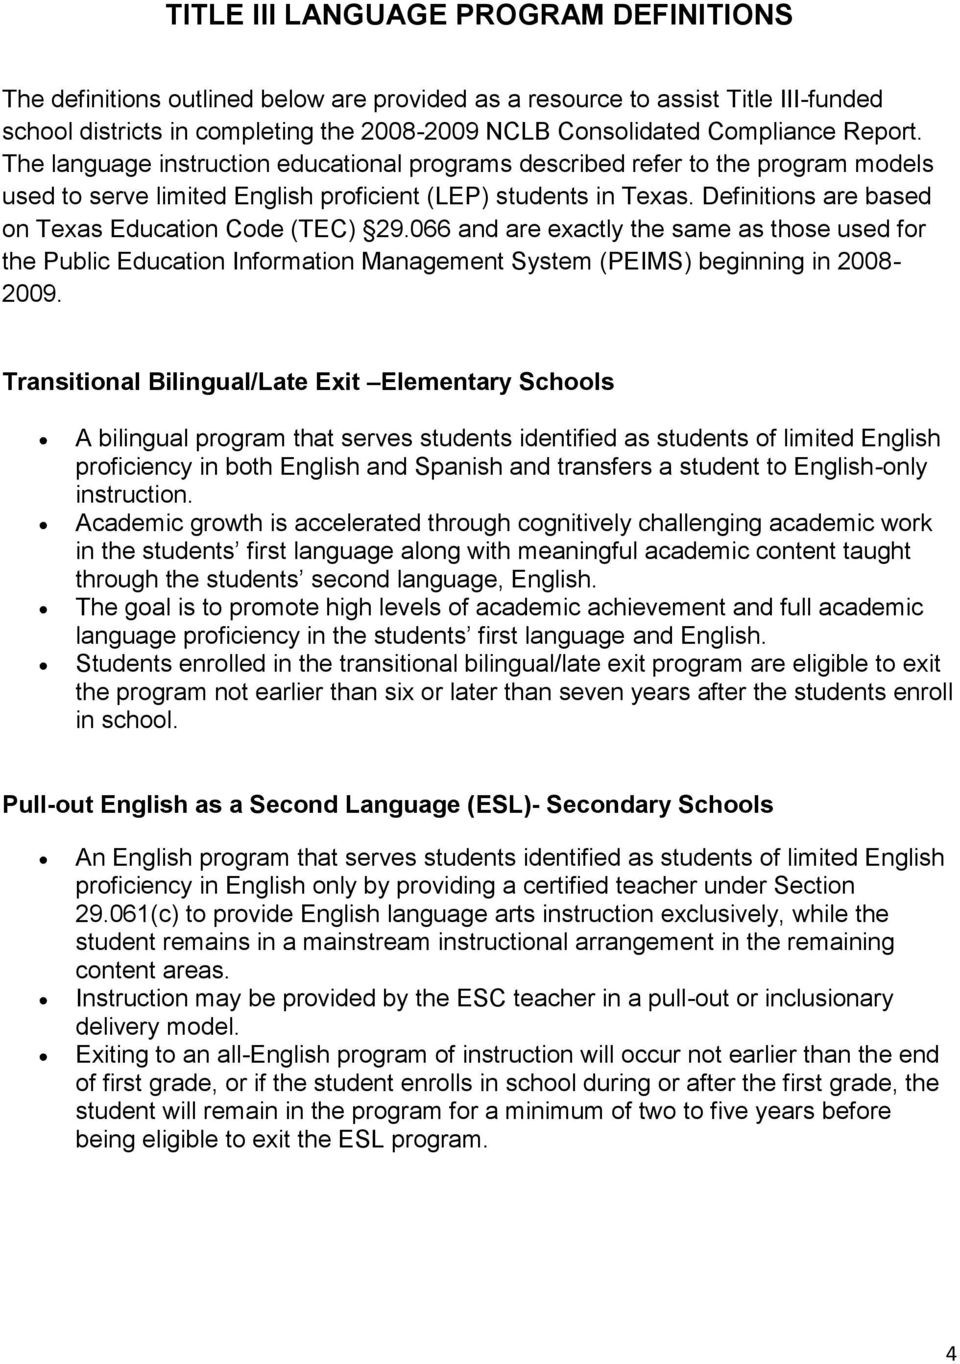 Definitions are based on Texas Education Code (TEC) 29.066 and are exactly the same as those used for the Public Education Information Management System (PEIMS) beginning in 2008-2009.